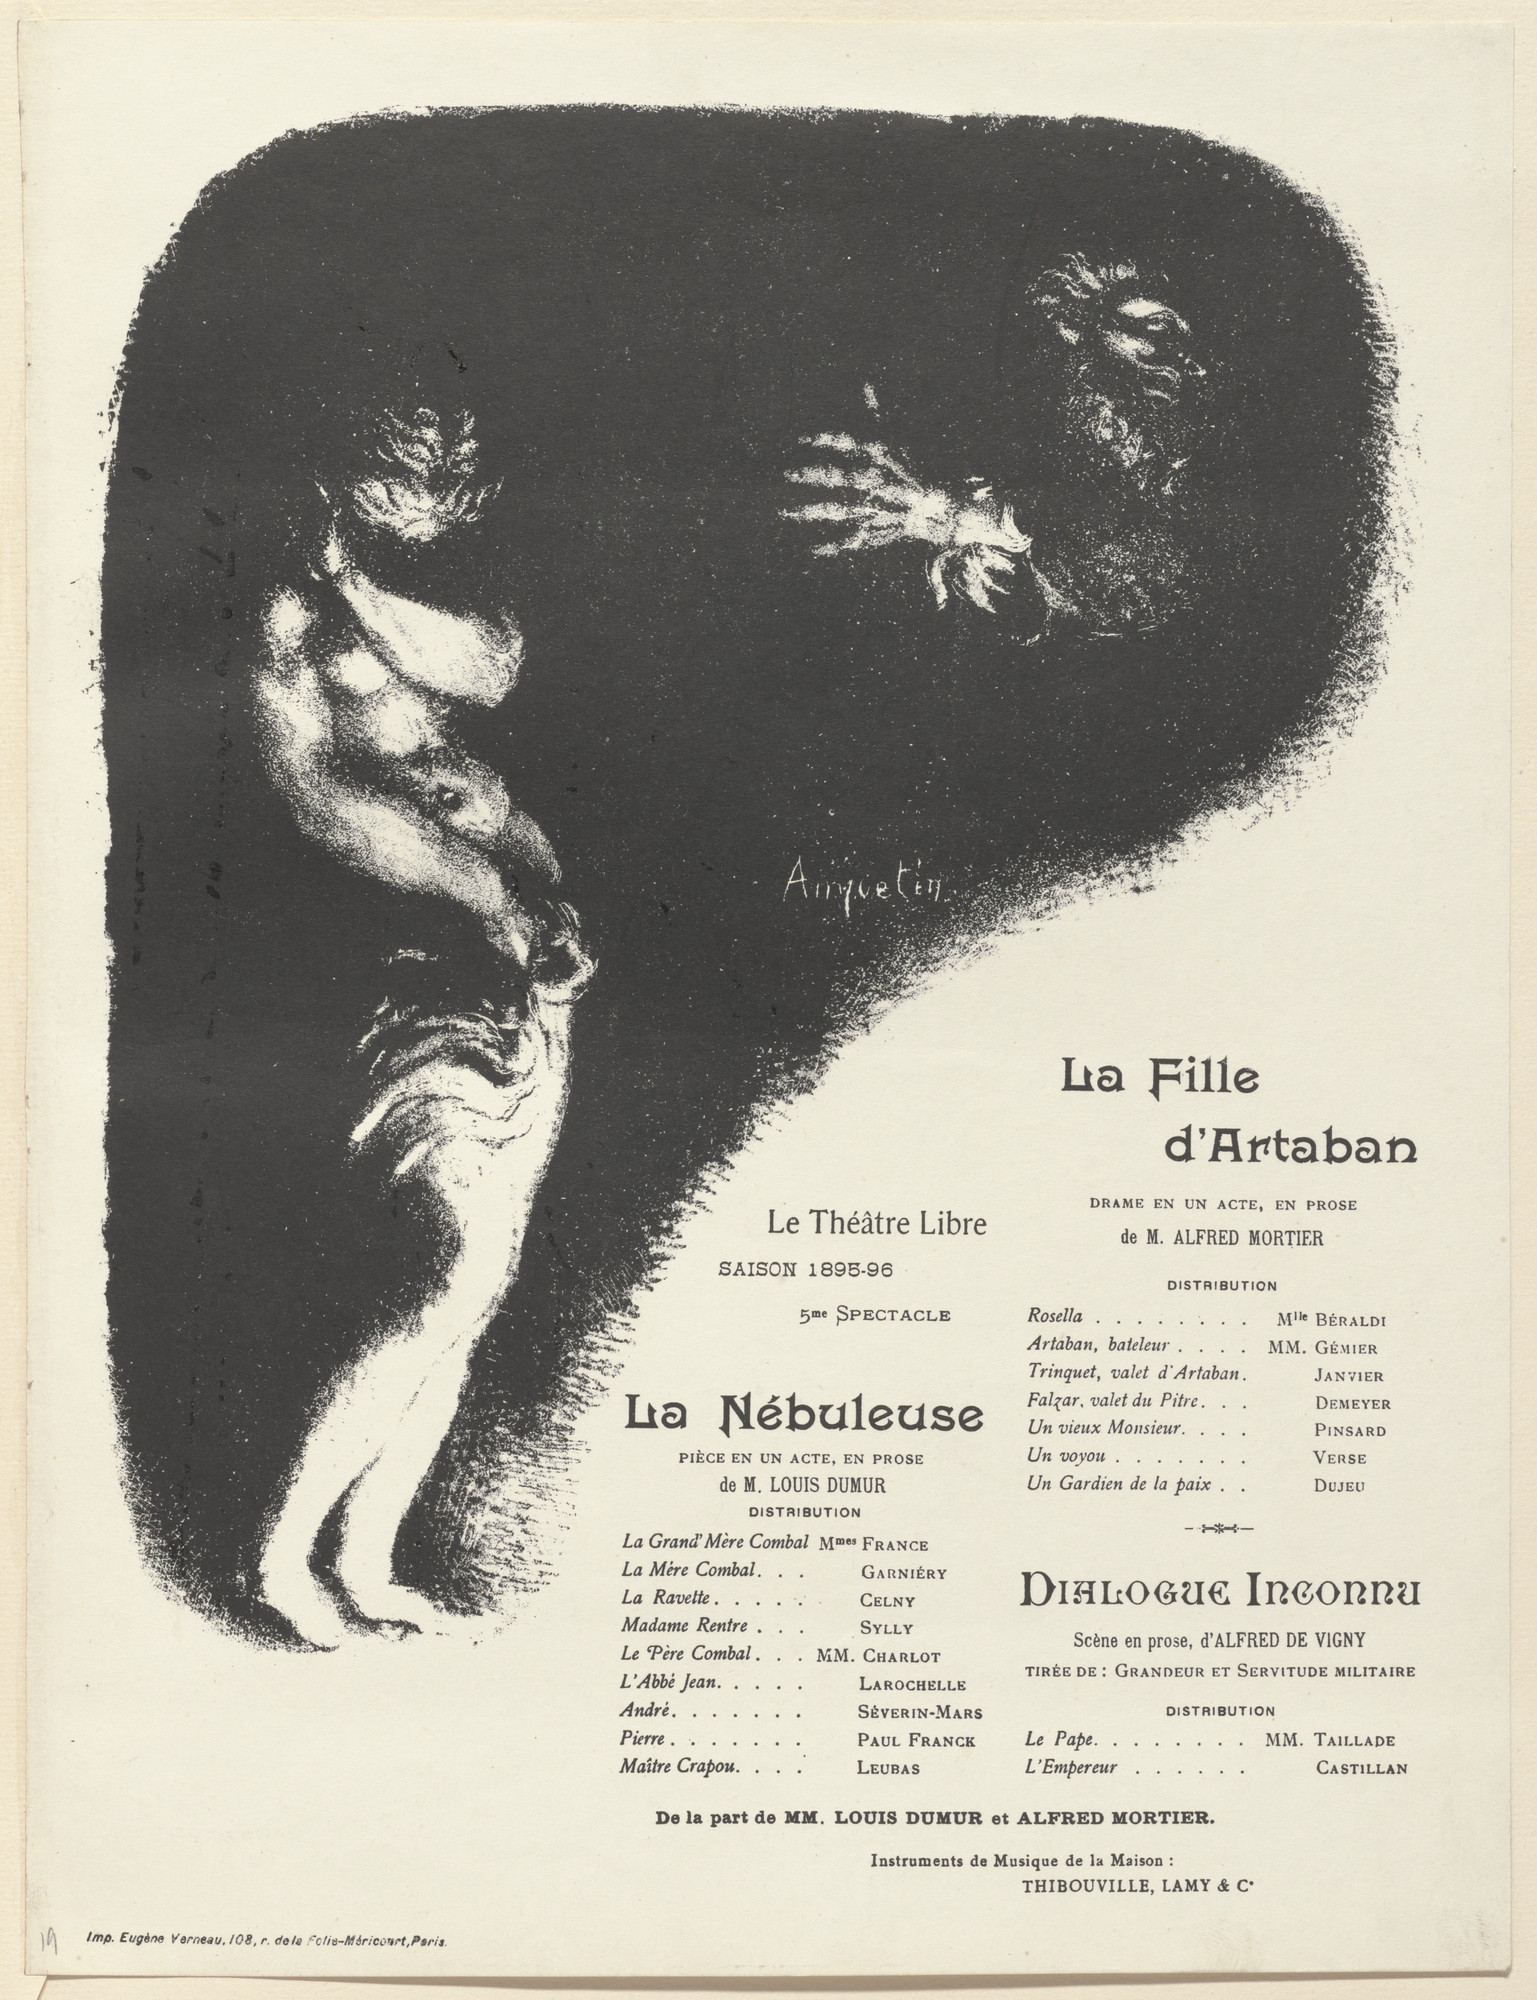 Louis Anquetin. Program for The Daughter of Artabanus (La Fille d'Artaban), The Nebula (La Nébuleuse) and Unknown Dialogue (Dialogue inconnu) from The Beraldi Album of Theatre Programs. 1896